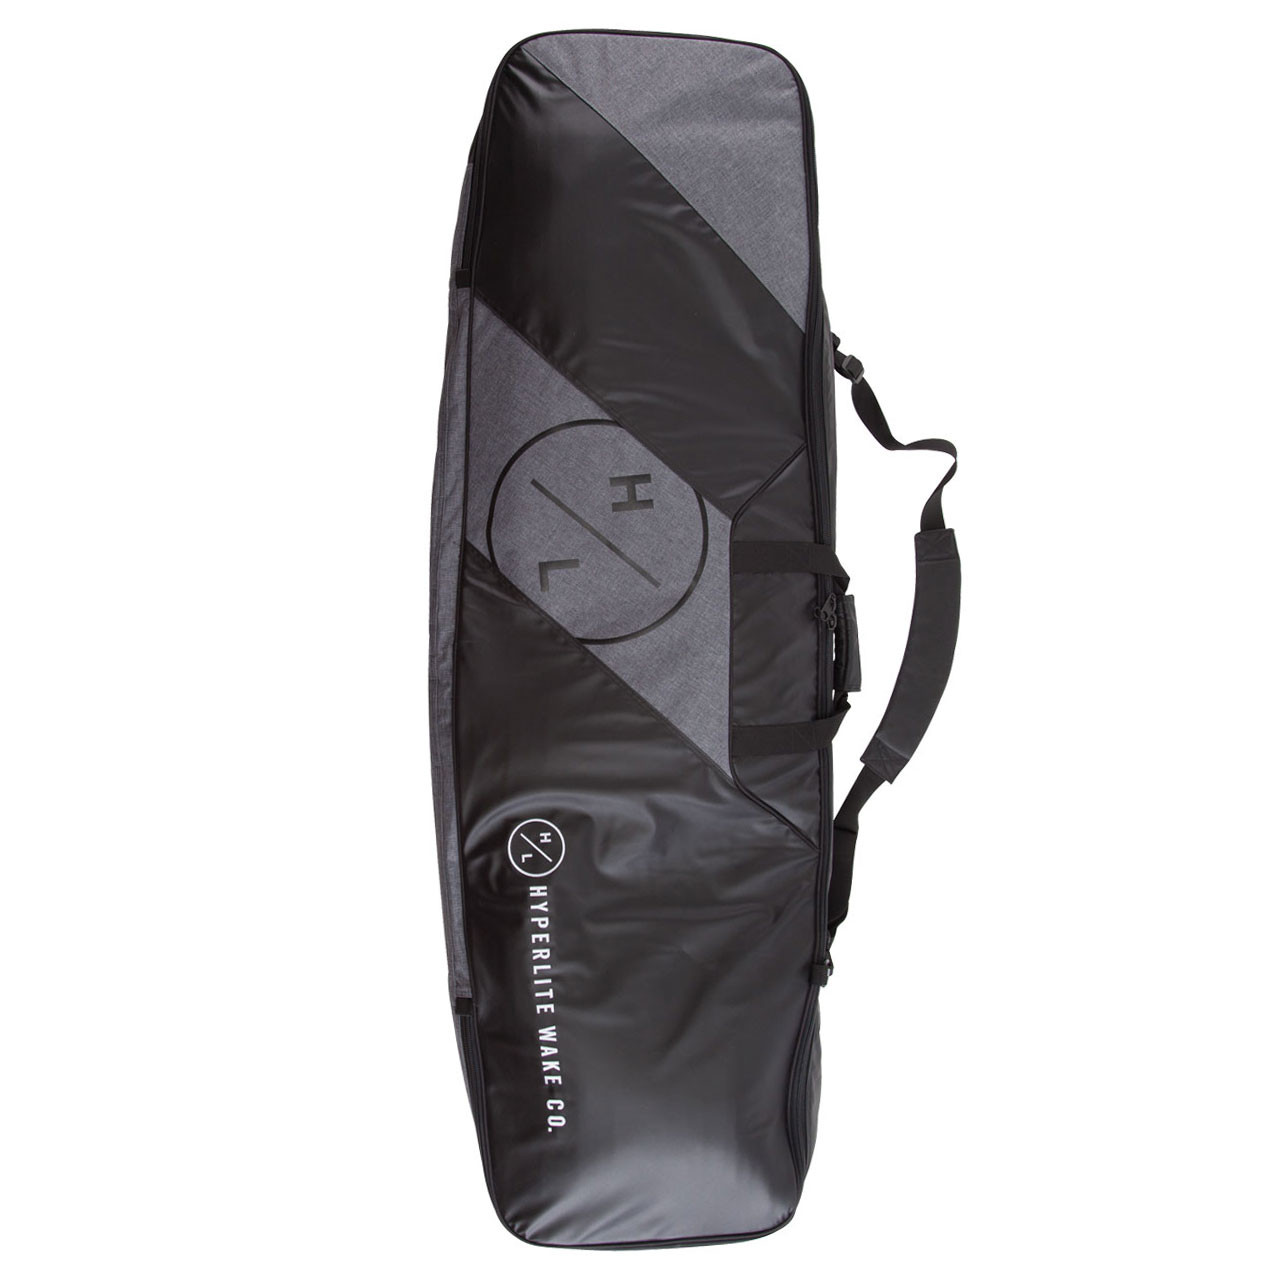 Obal Hyperlite Producer Board Bag